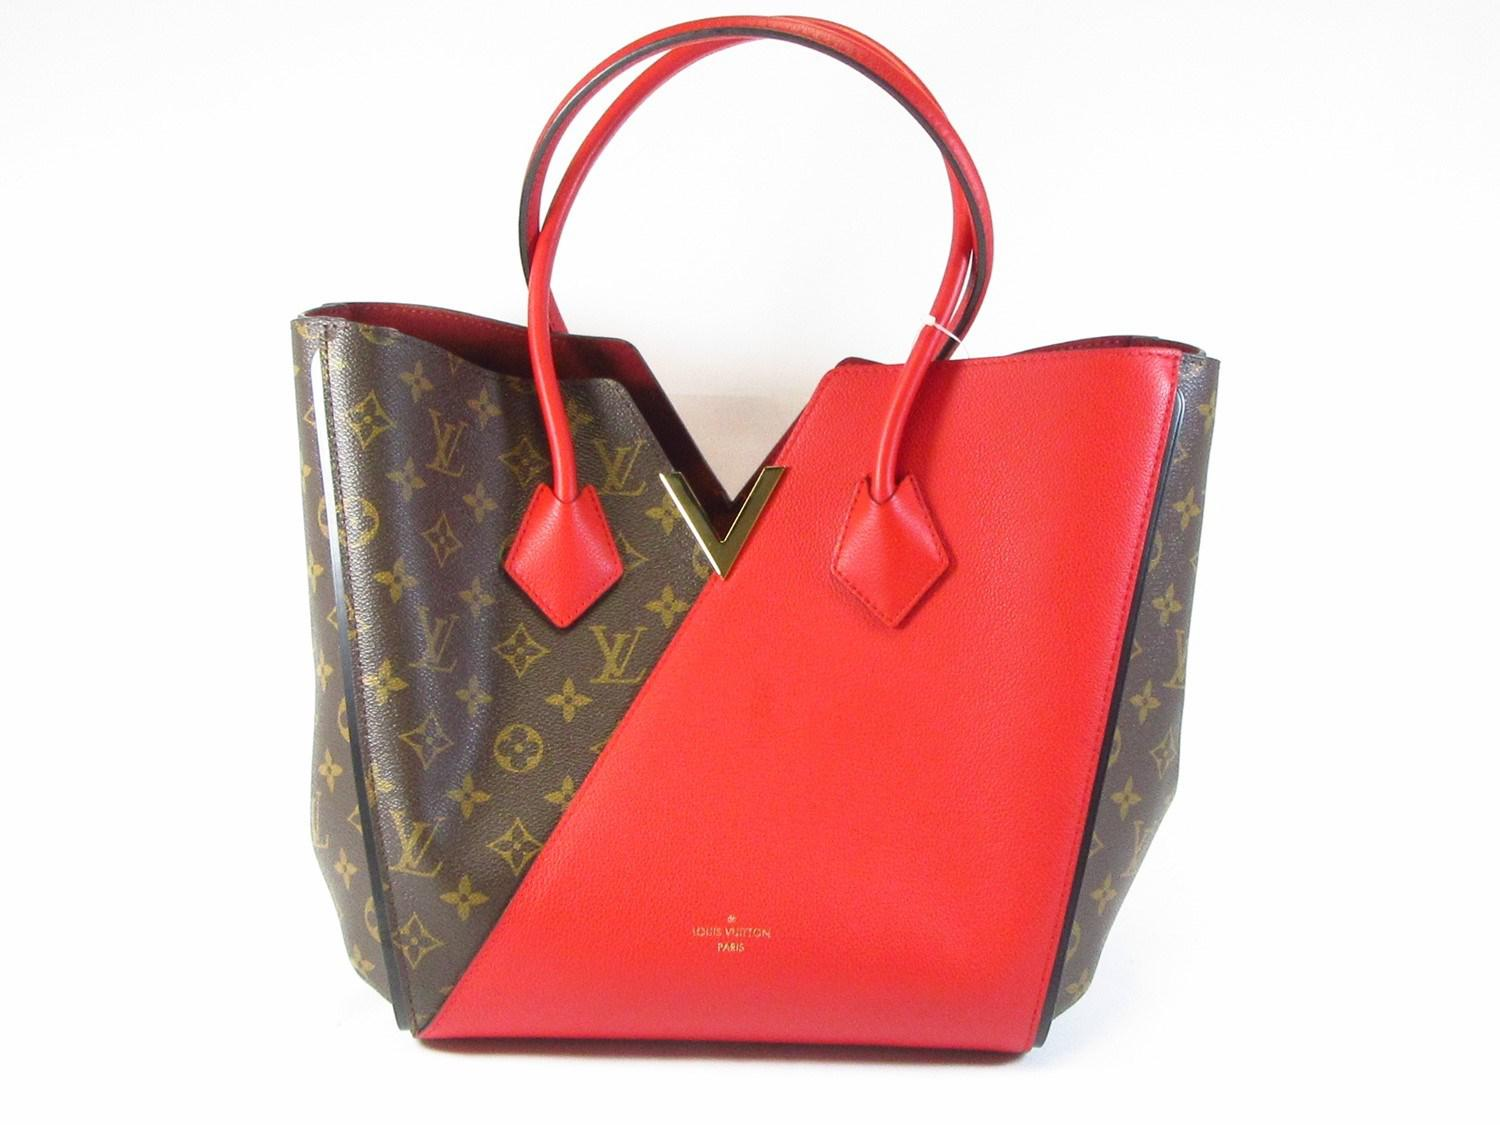 744d748028bb Lyst - Louis Vuitton Monogram Kimono Tote Bag Cerise M40459 in Red